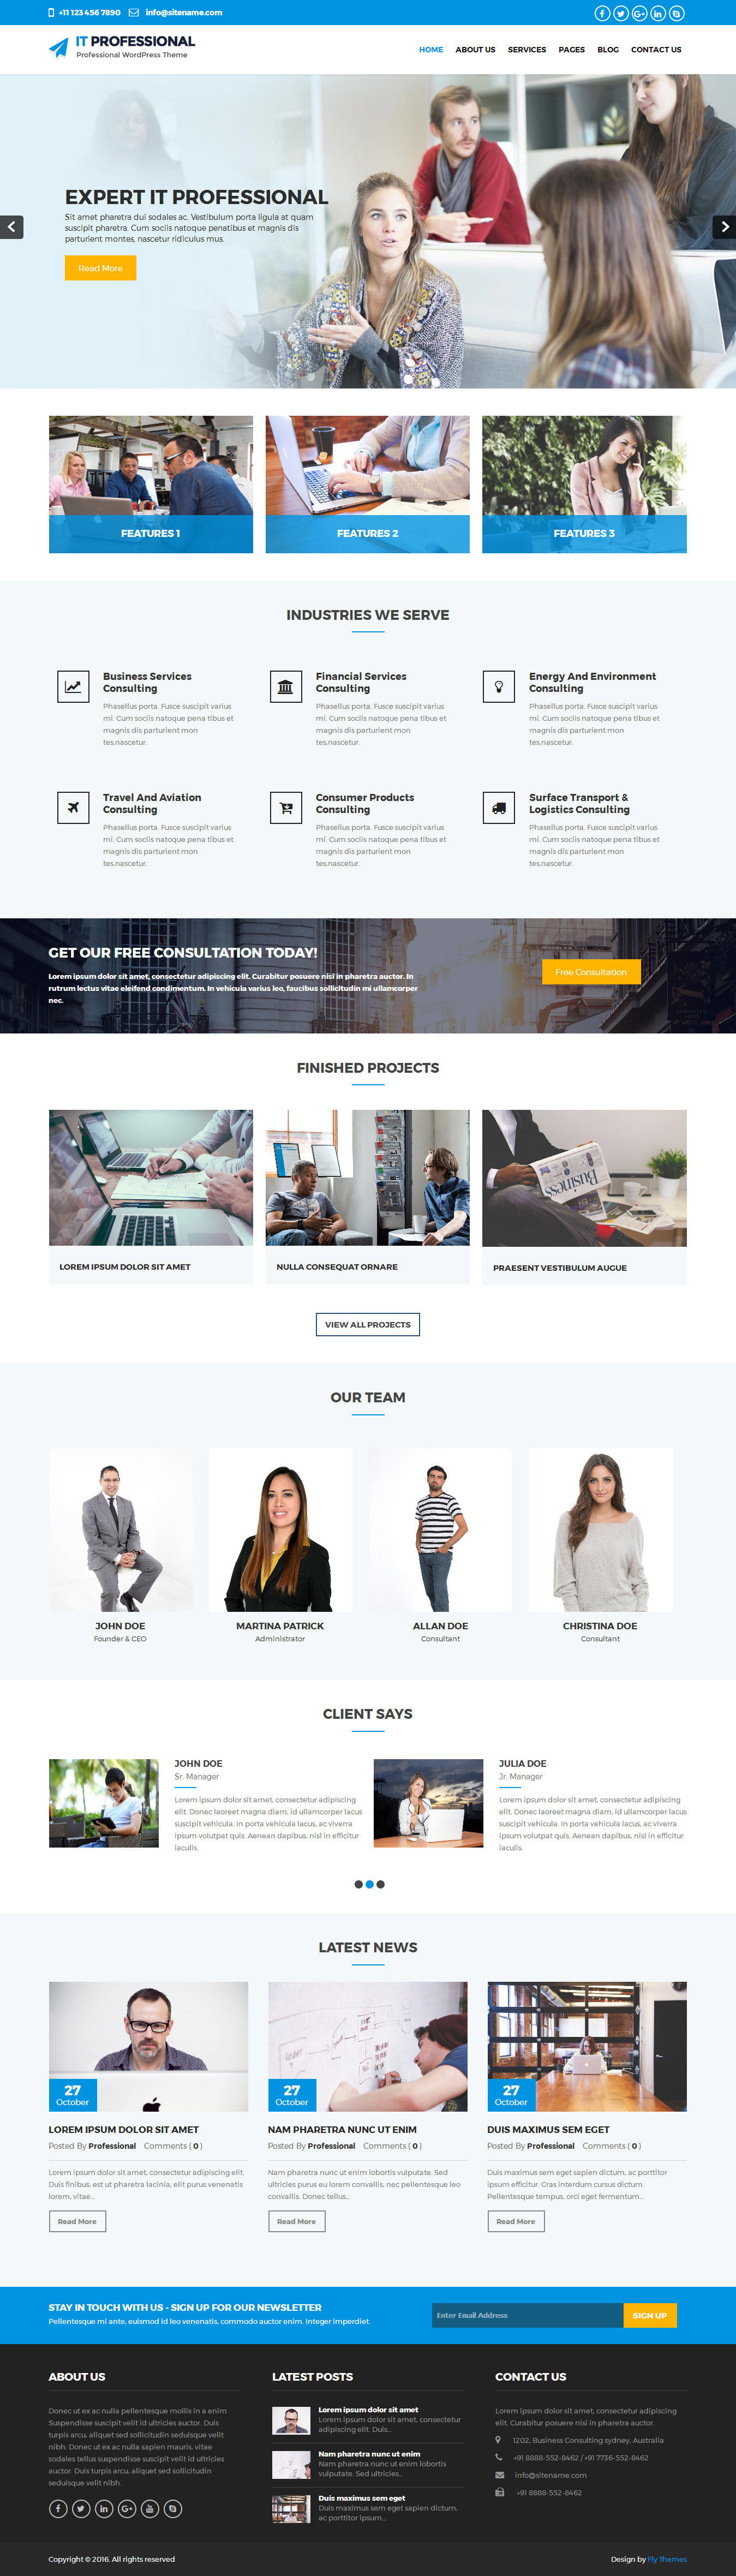 it-professional-wordpress-theme